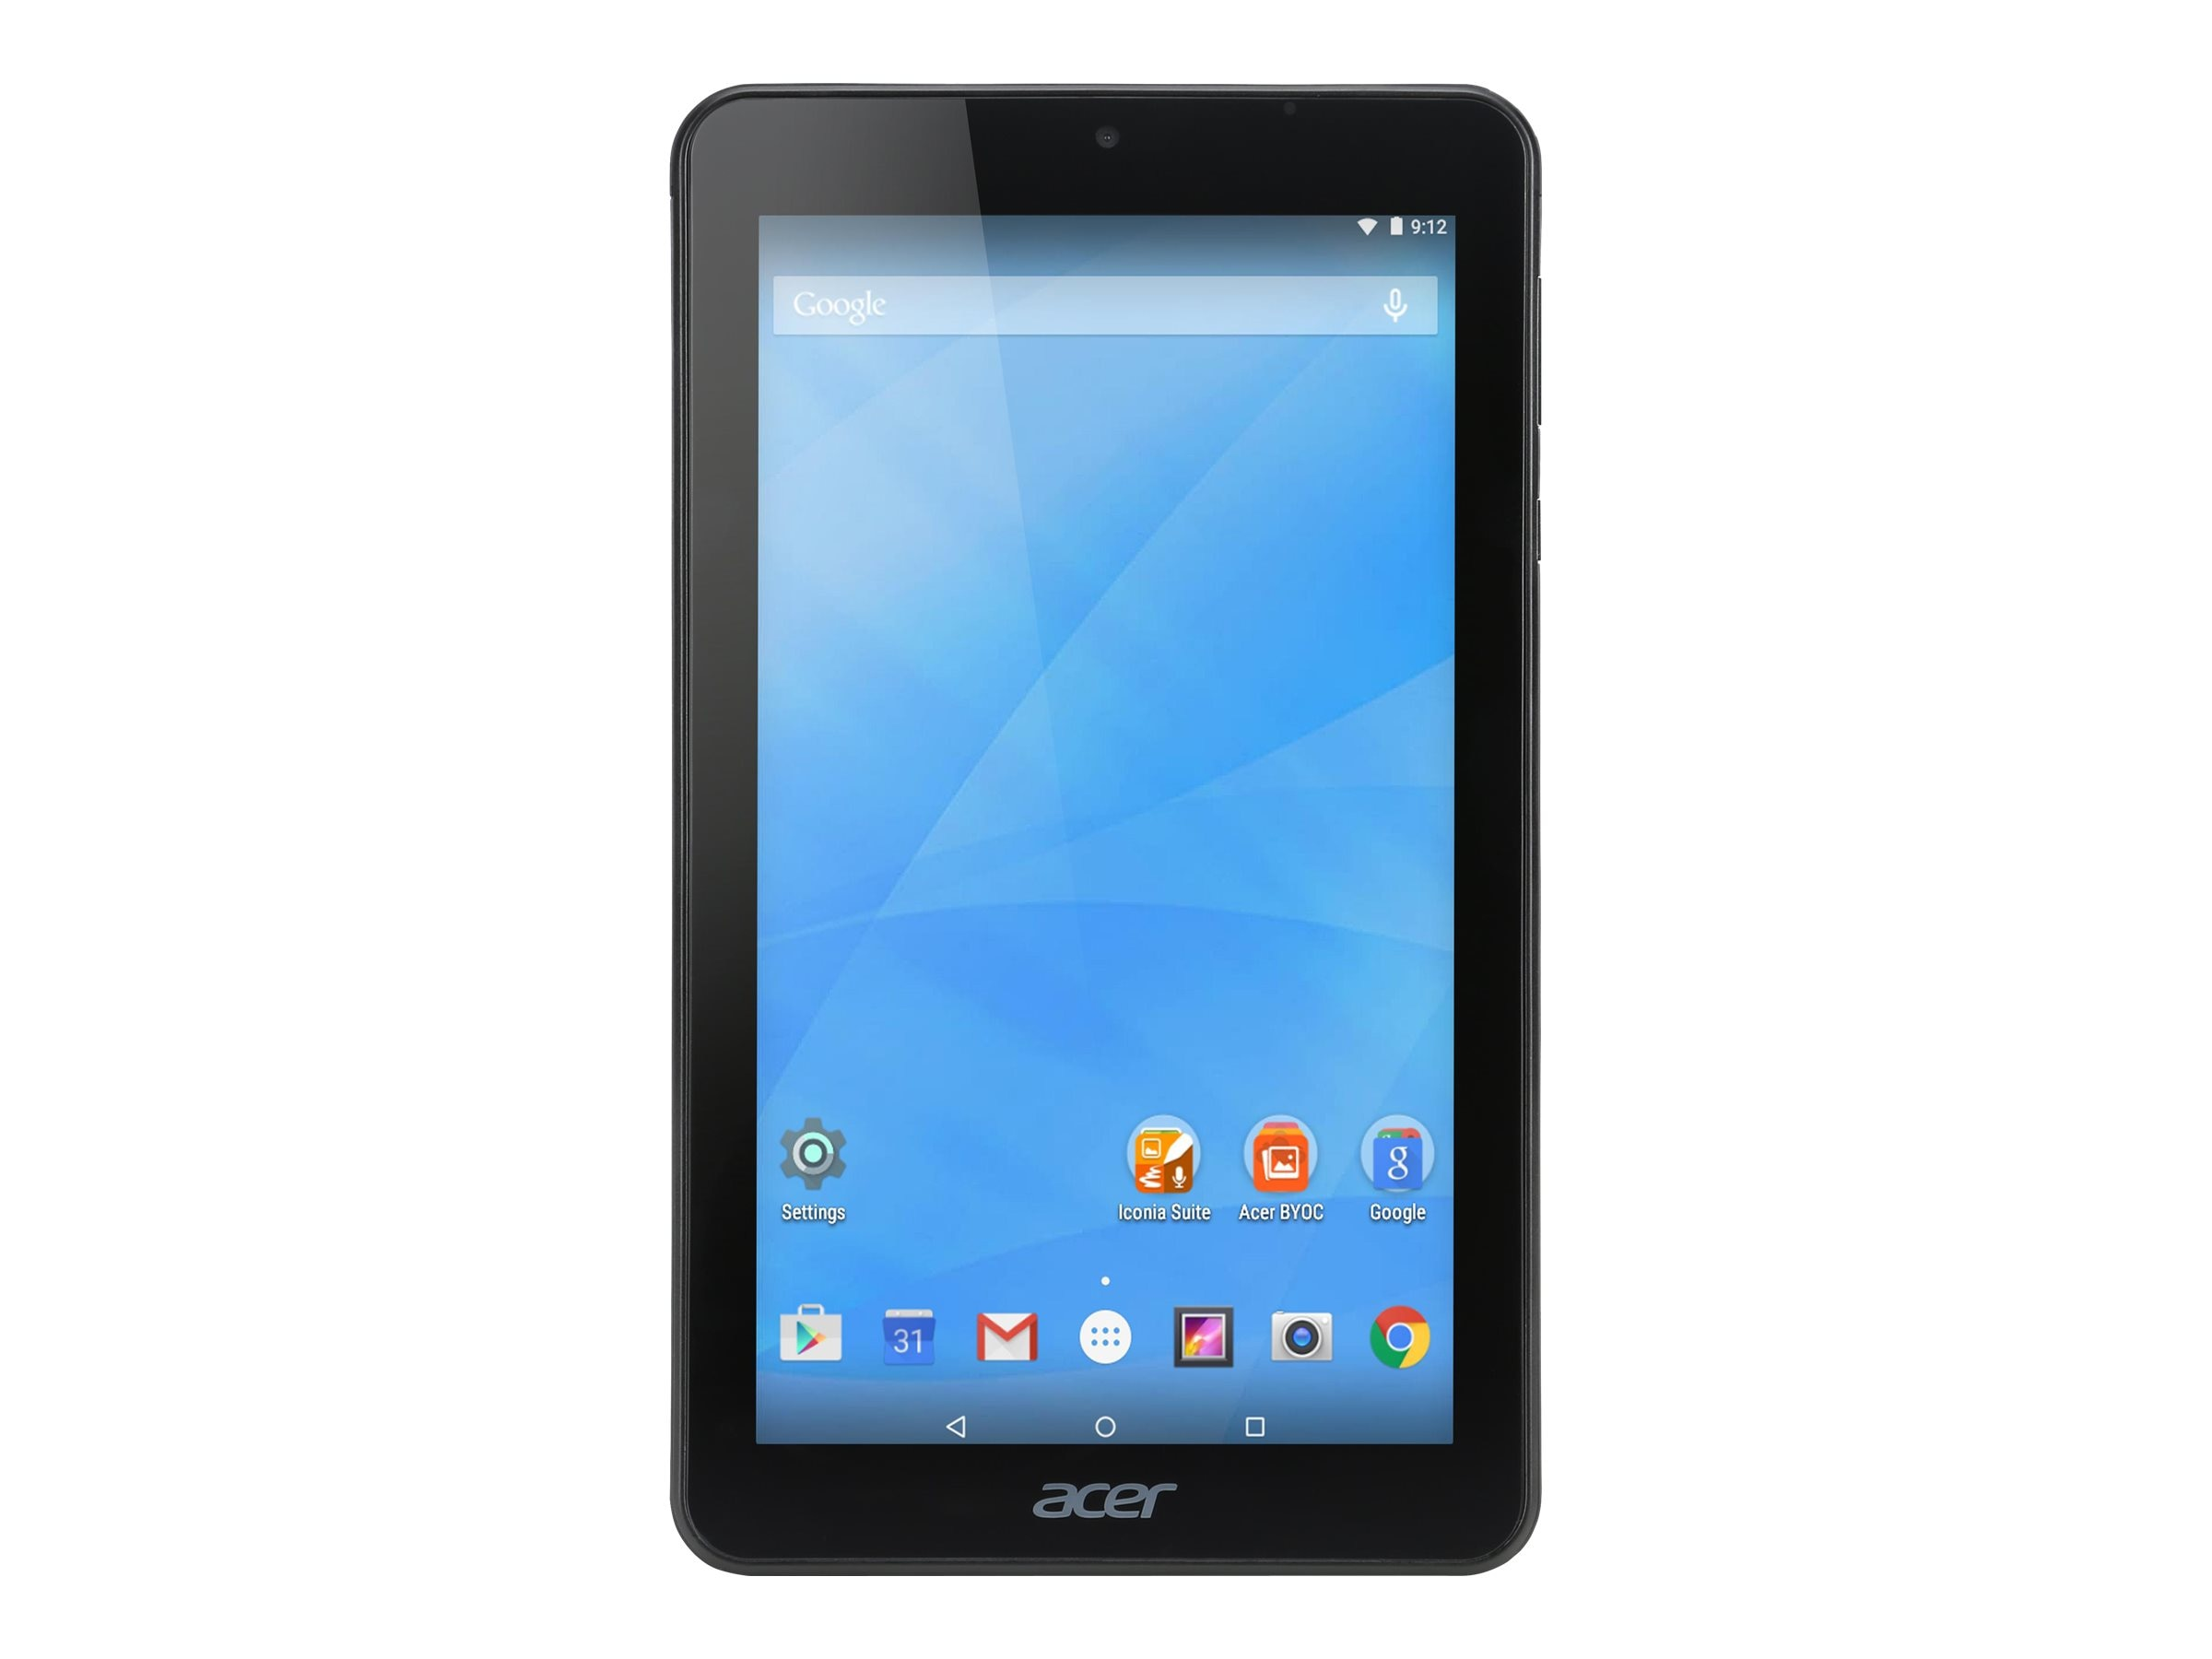 Acer Iconia B1-770-K3RC MT8127 1.3GHz 1GB 16GB bgn BT 2xWC 1C 7 WSVGA MT Android 5.0 Black, NT.LBRAA.001